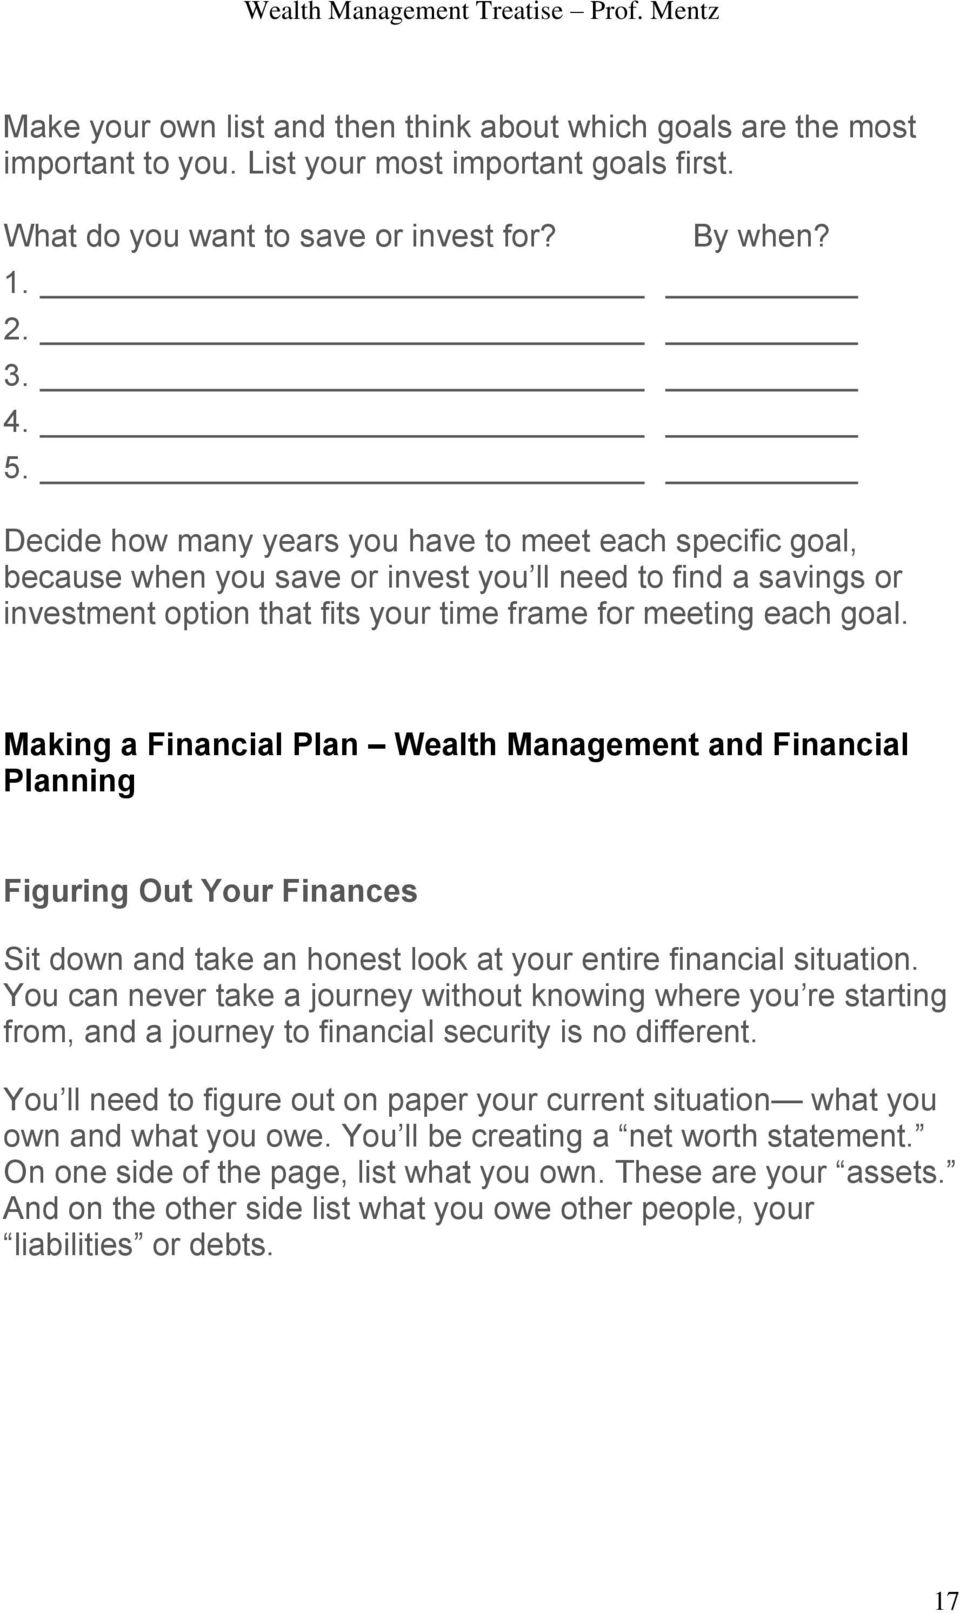 Making a Financial Plan Wealth Management and Financial Planning Figuring Out Your Finances Sit down and take an honest look at your entire financial situation.